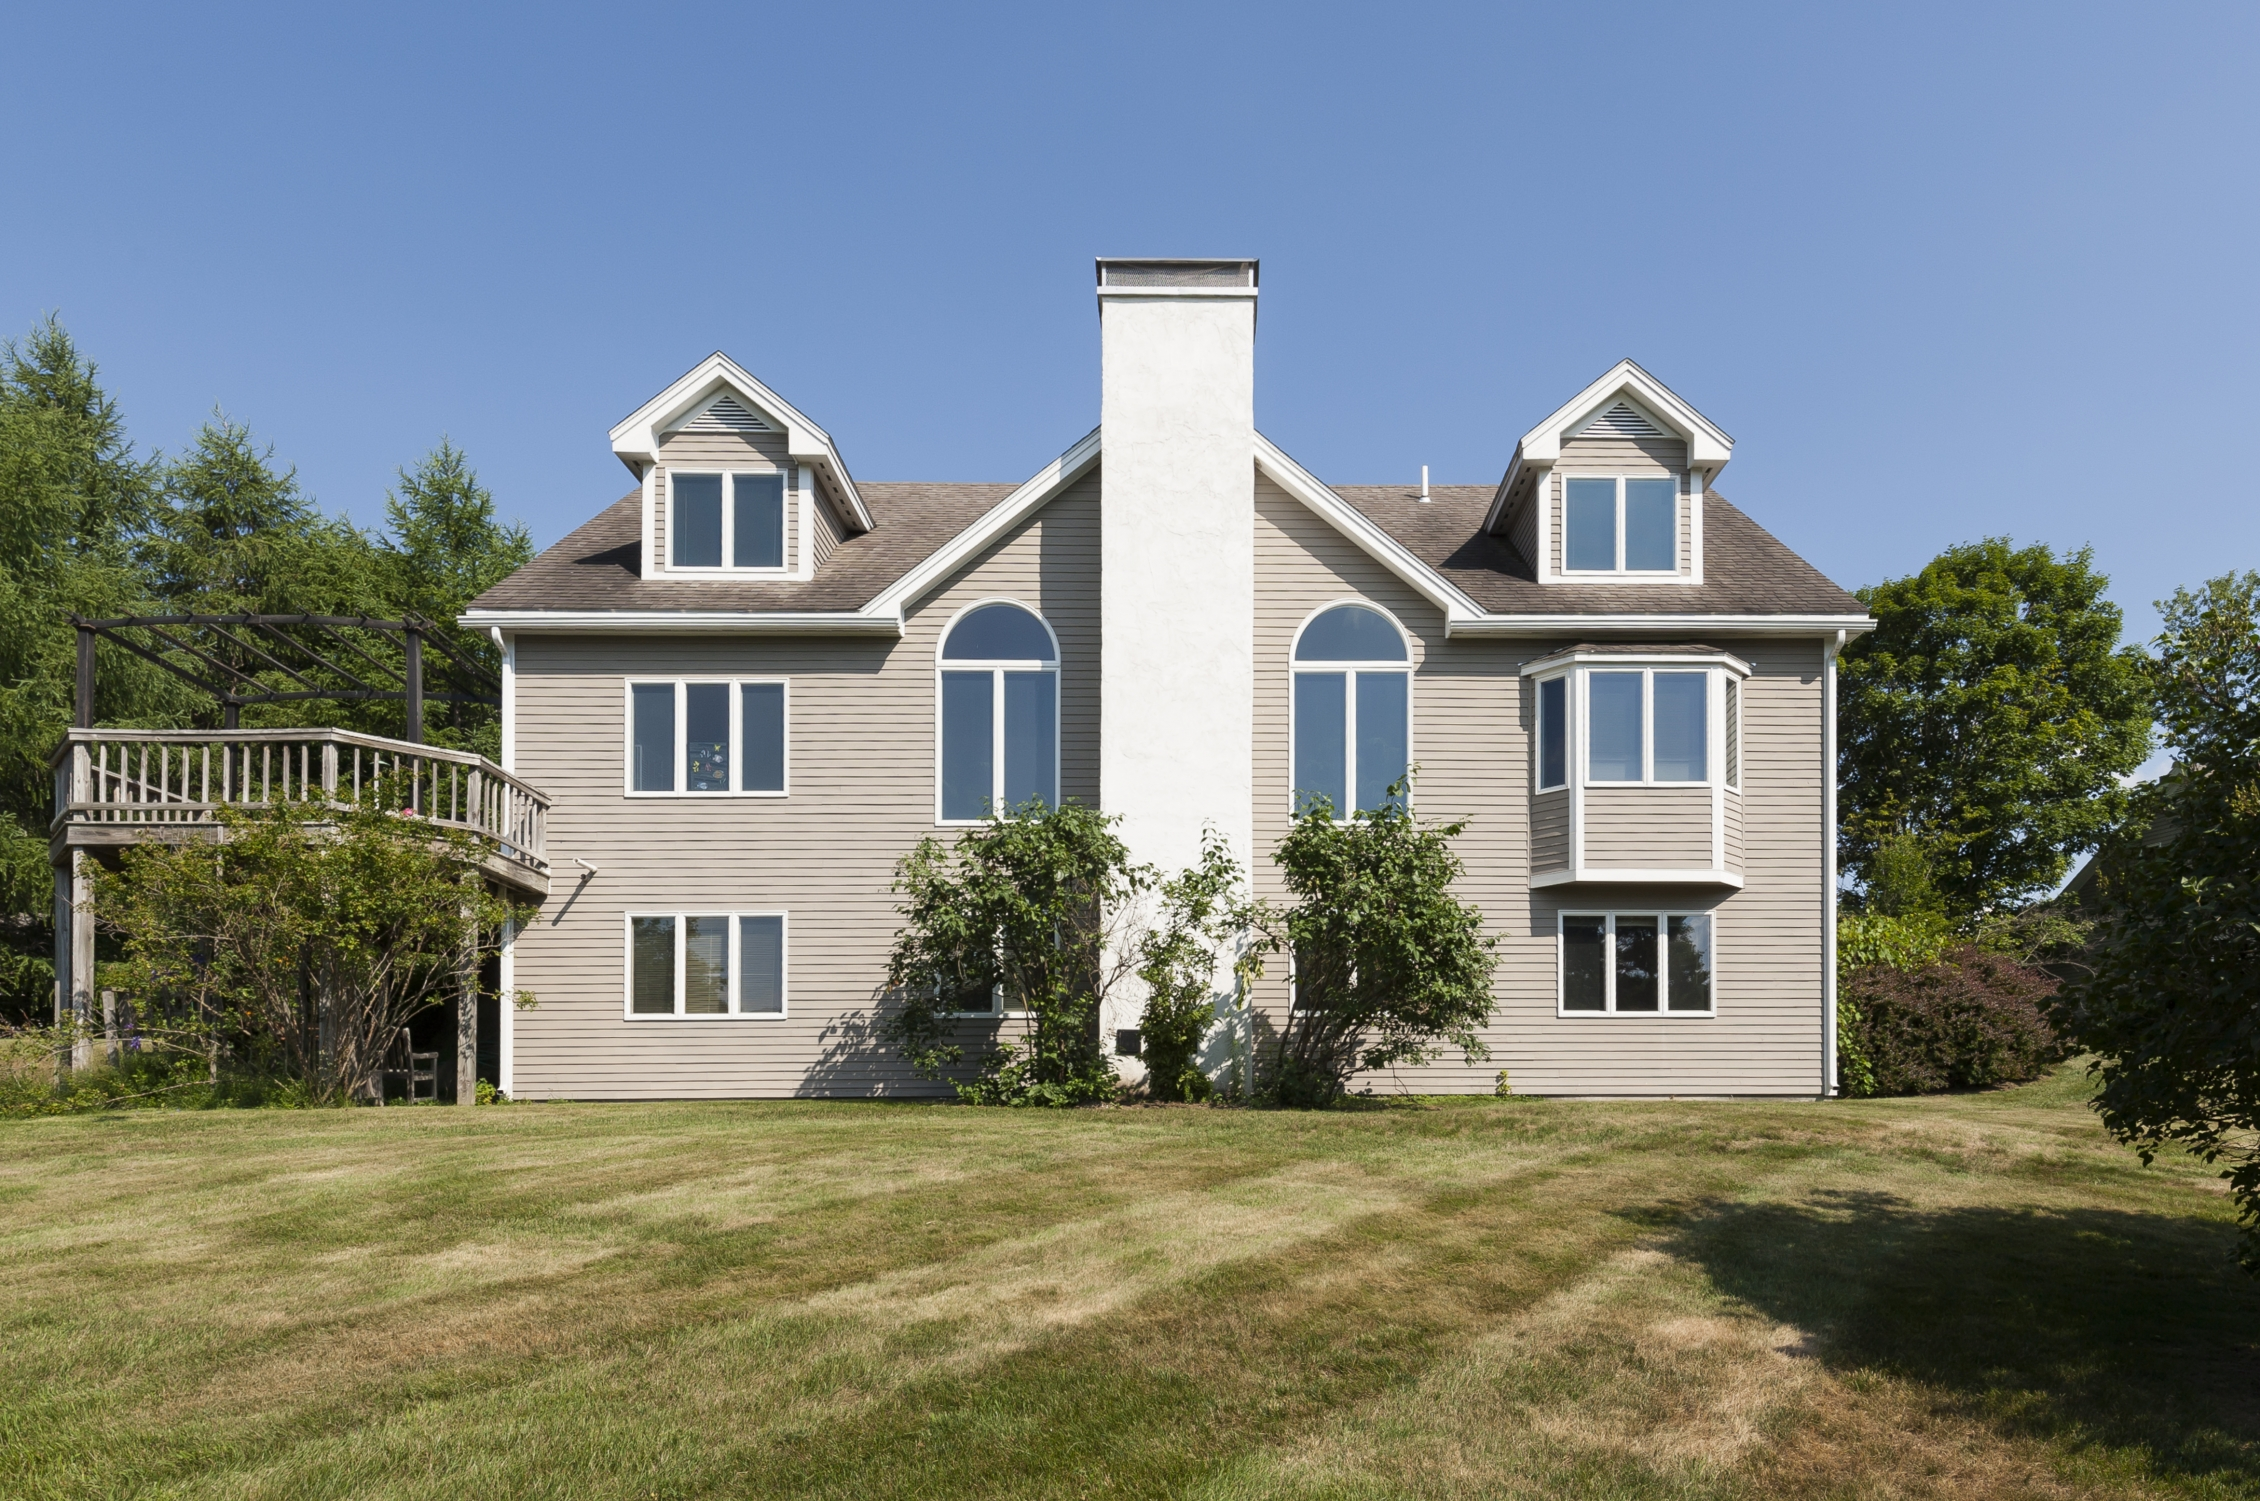 Single Family Home for Sale at 6 Cuttings Corner Cor, Hanover Hanover, New Hampshire, 03755 United States